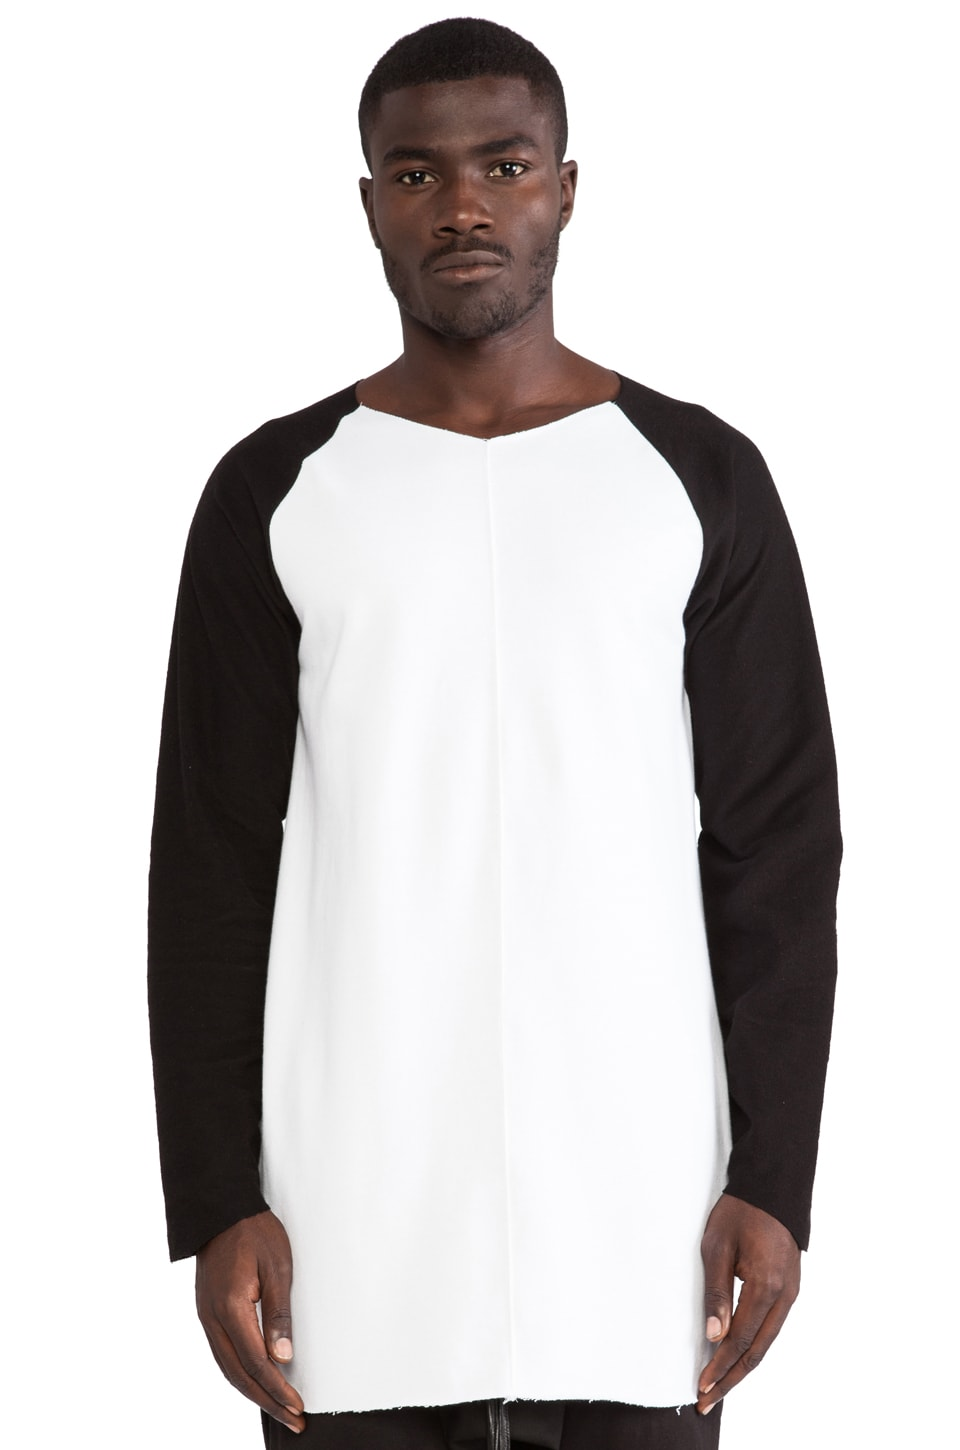 Daniel Patrick Sweatshirt in Black/ White